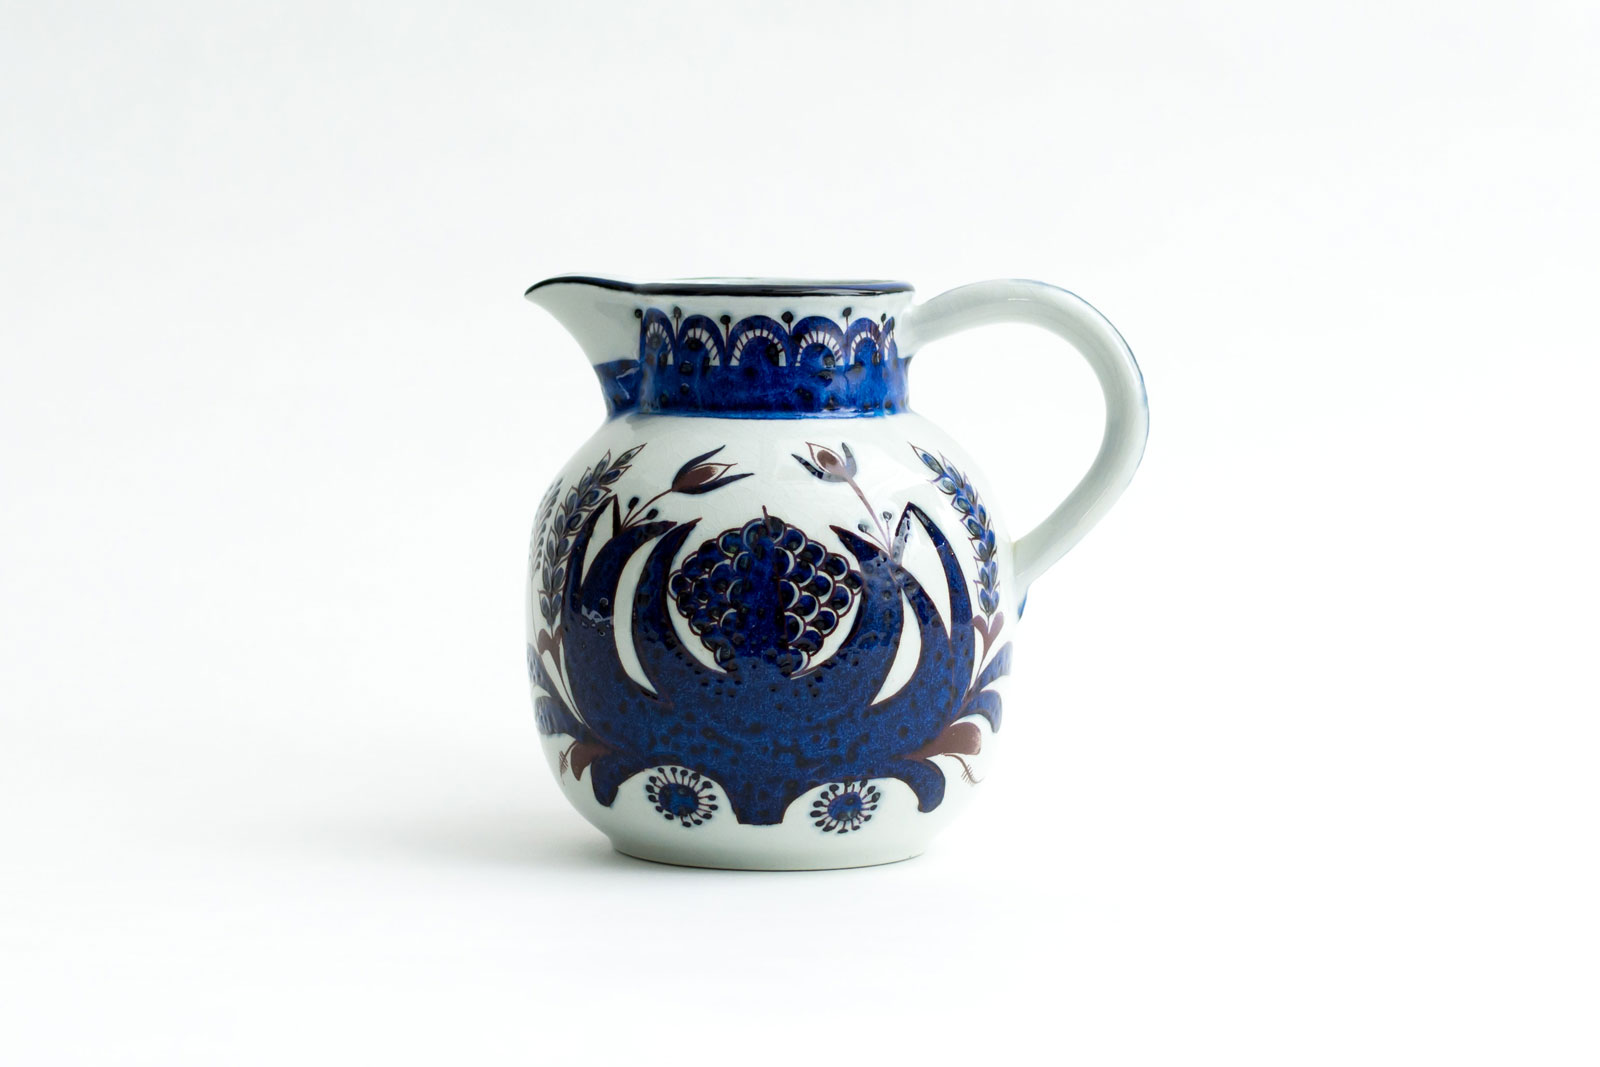 Jug designed by Berte Jessen